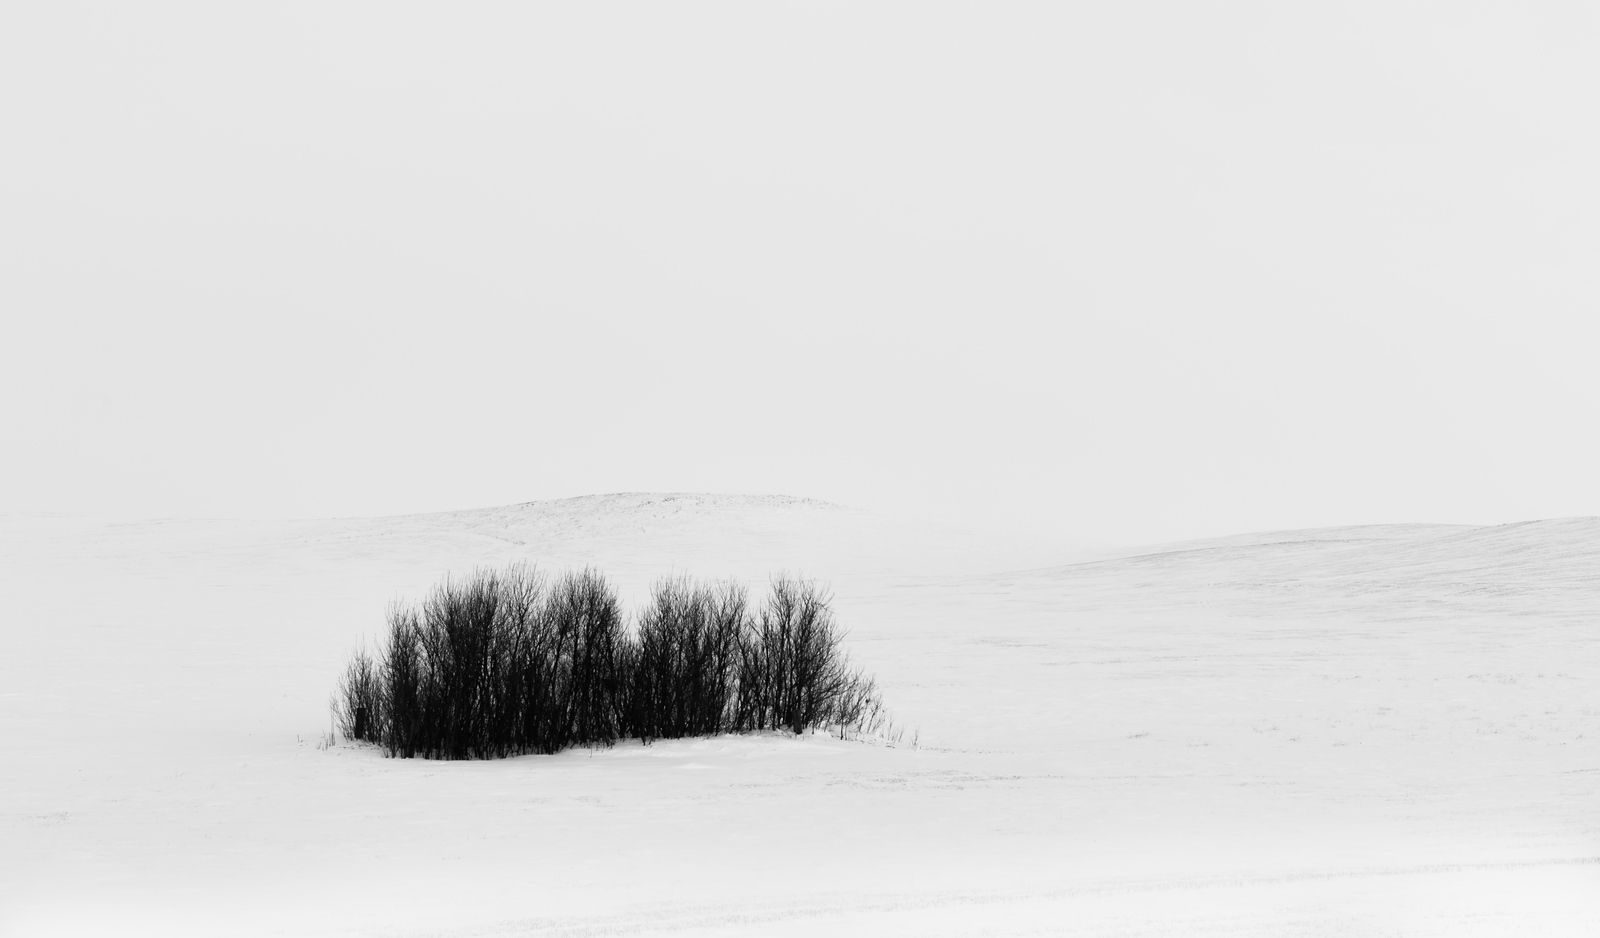 Trees in Snow 1.0